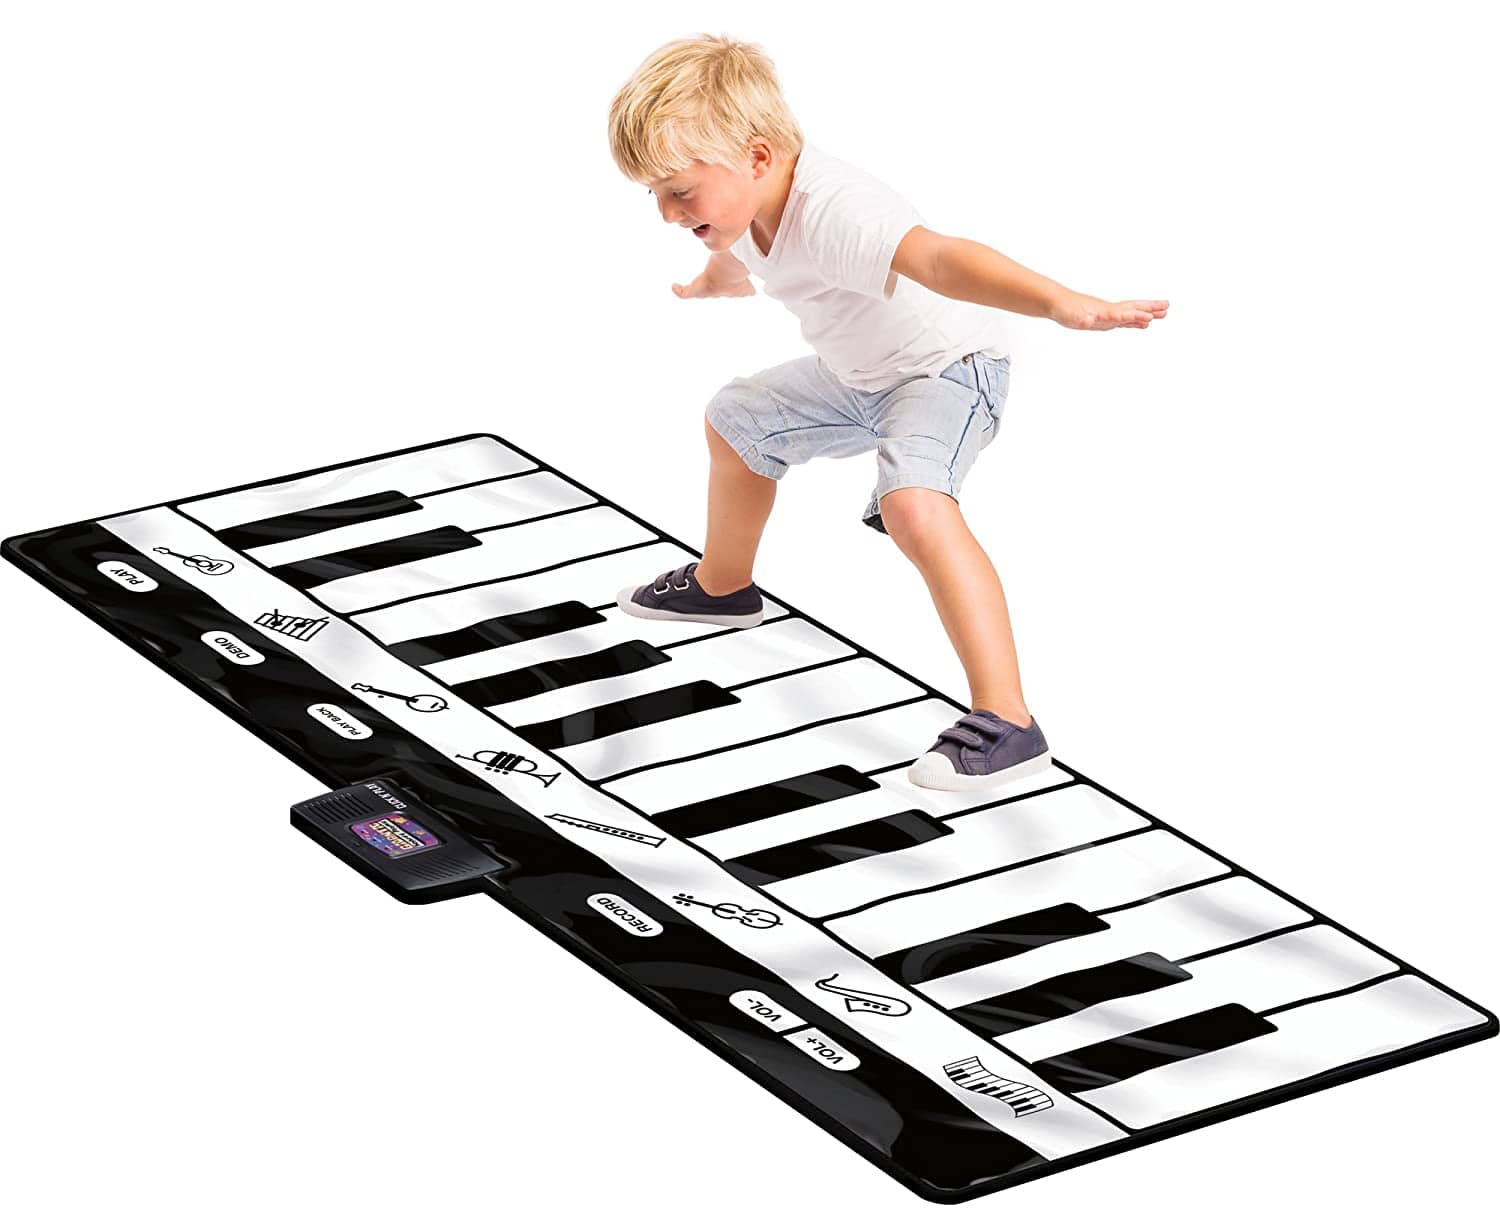 Click N' Play Gigantic Keyboard Kid's Play Mat $23.75 + Free Shipping w/ Prime or on $25+